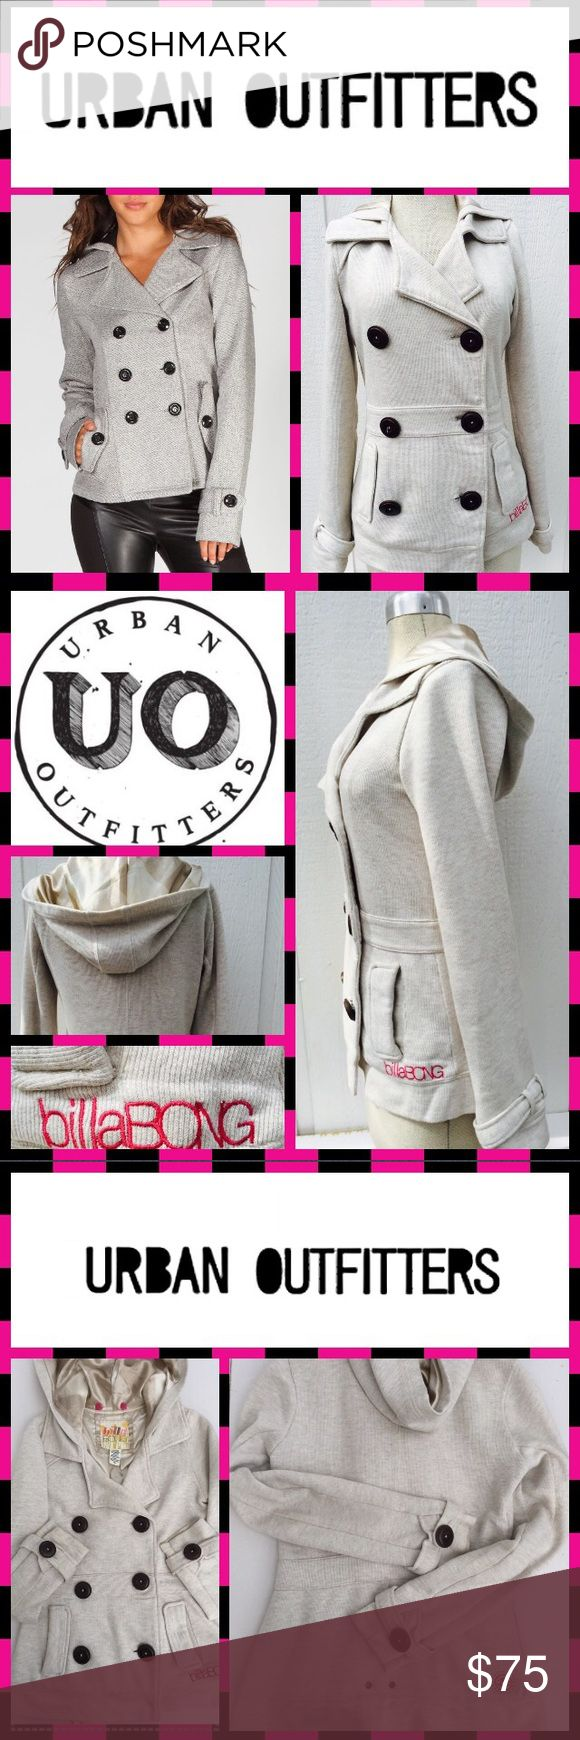 Cozy Jersey Hooded Fall Peacoat Jacket urban outfitters casual look with this comfy beige/cream jersey knit peacoat by billabong. Comes with two exterior pockets, double breasted button down style, satin like lining and hood. Button details on sleeves and nice belted feel with the fitting around the waist. Easy to clean. Nice condition. Missing the interior snap button that can easily be added from any fabric store. Otherwise in great shape! Size xs fits like a 2-4 in ladies. Perfect fall…